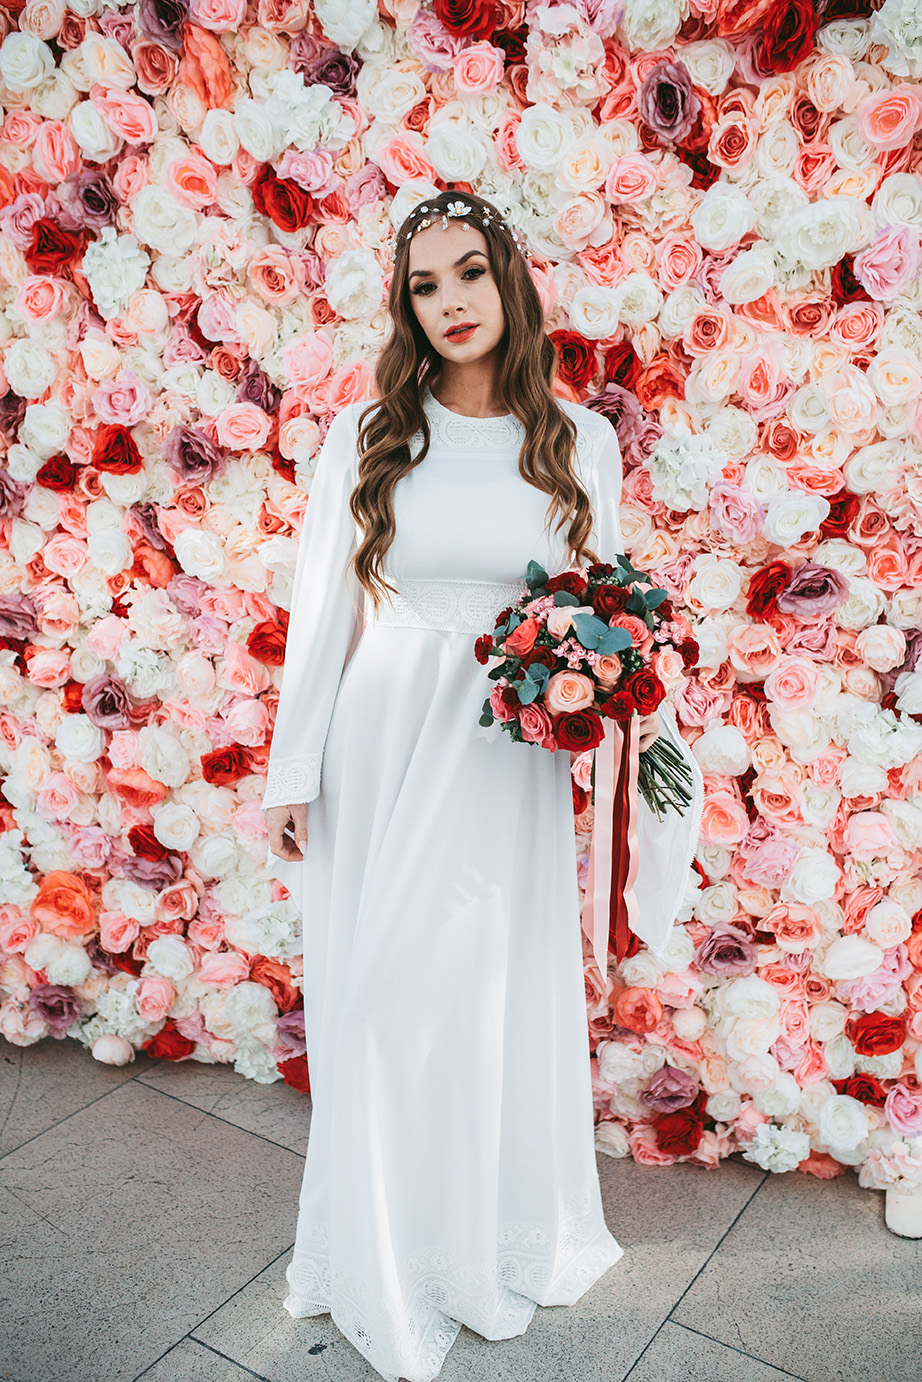 One more wedding dress was a folksy boho one, with a high neckline and long sleeves